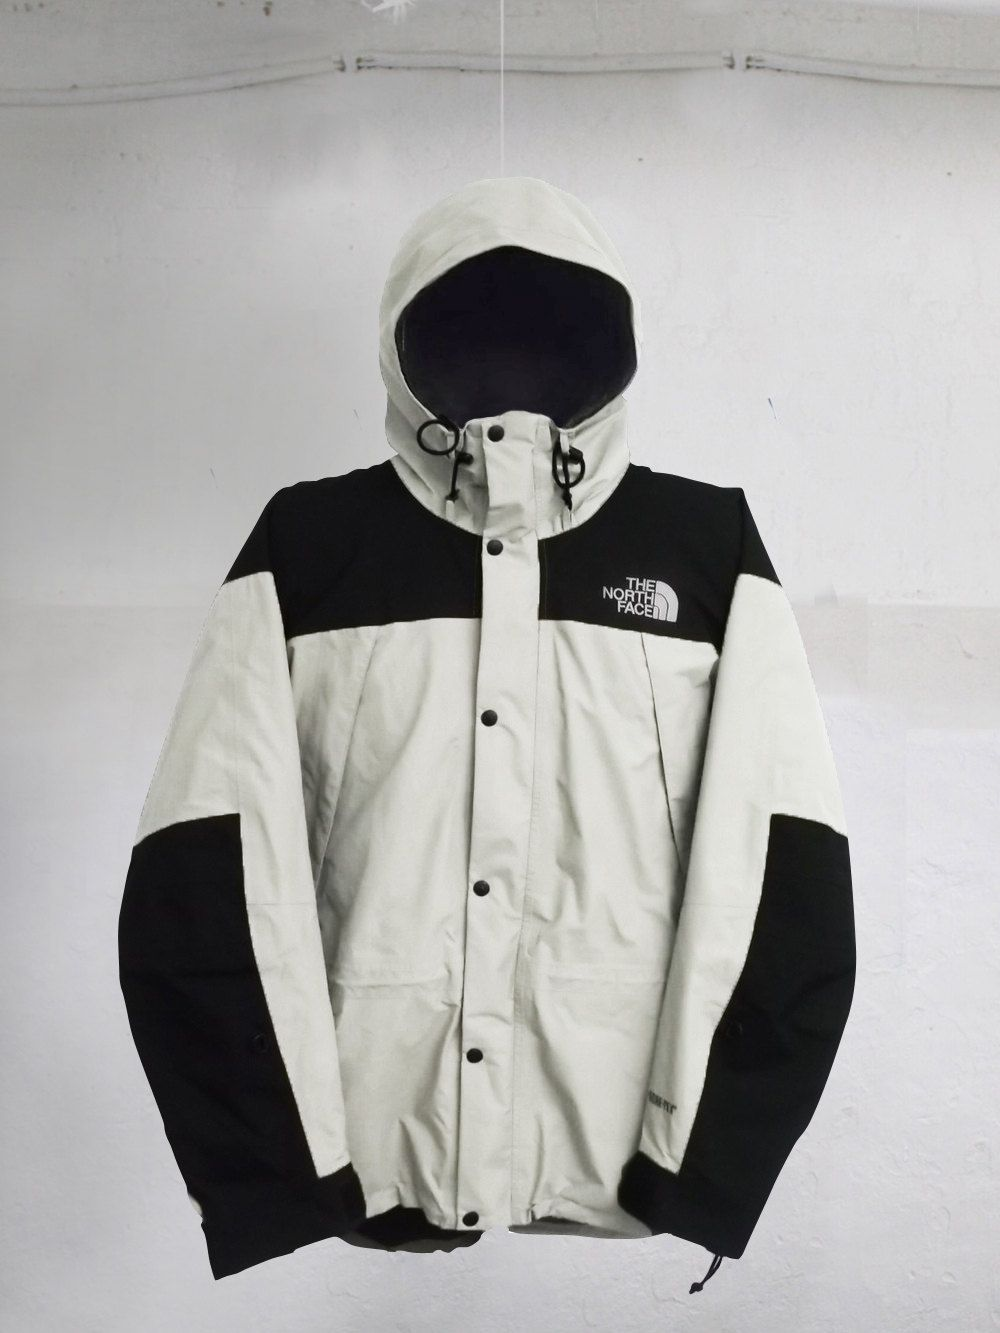 5d53b9ca623b Vintage 90s The North Face Mountain Guide Gore-Tex jacket White Black Size  S by VapeoVintage on Etsy